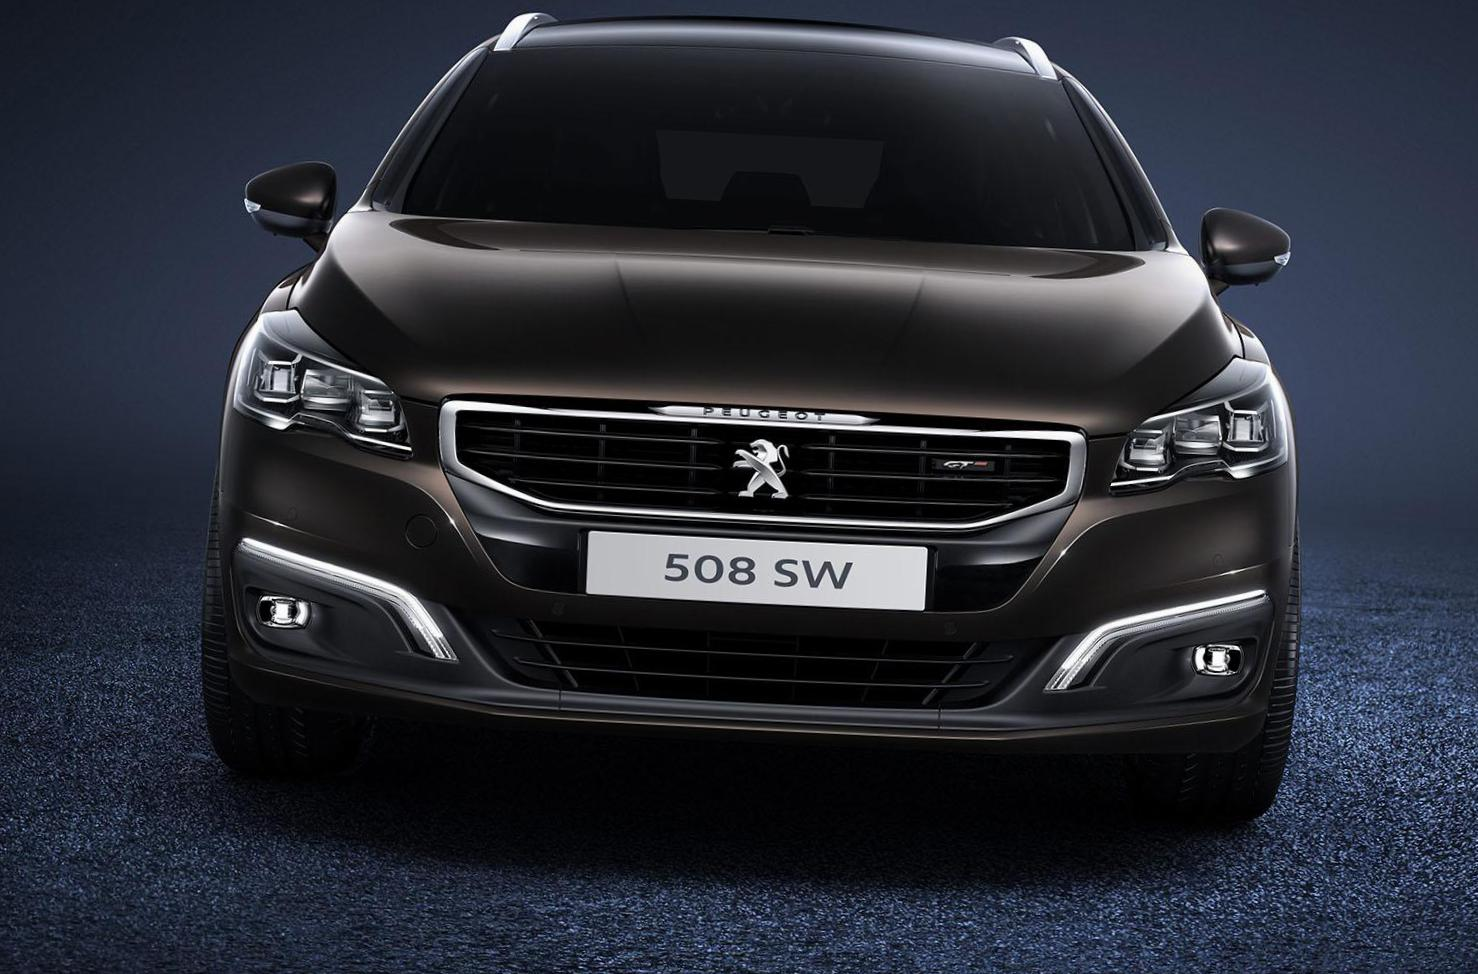 508 SW Peugeot review 2013